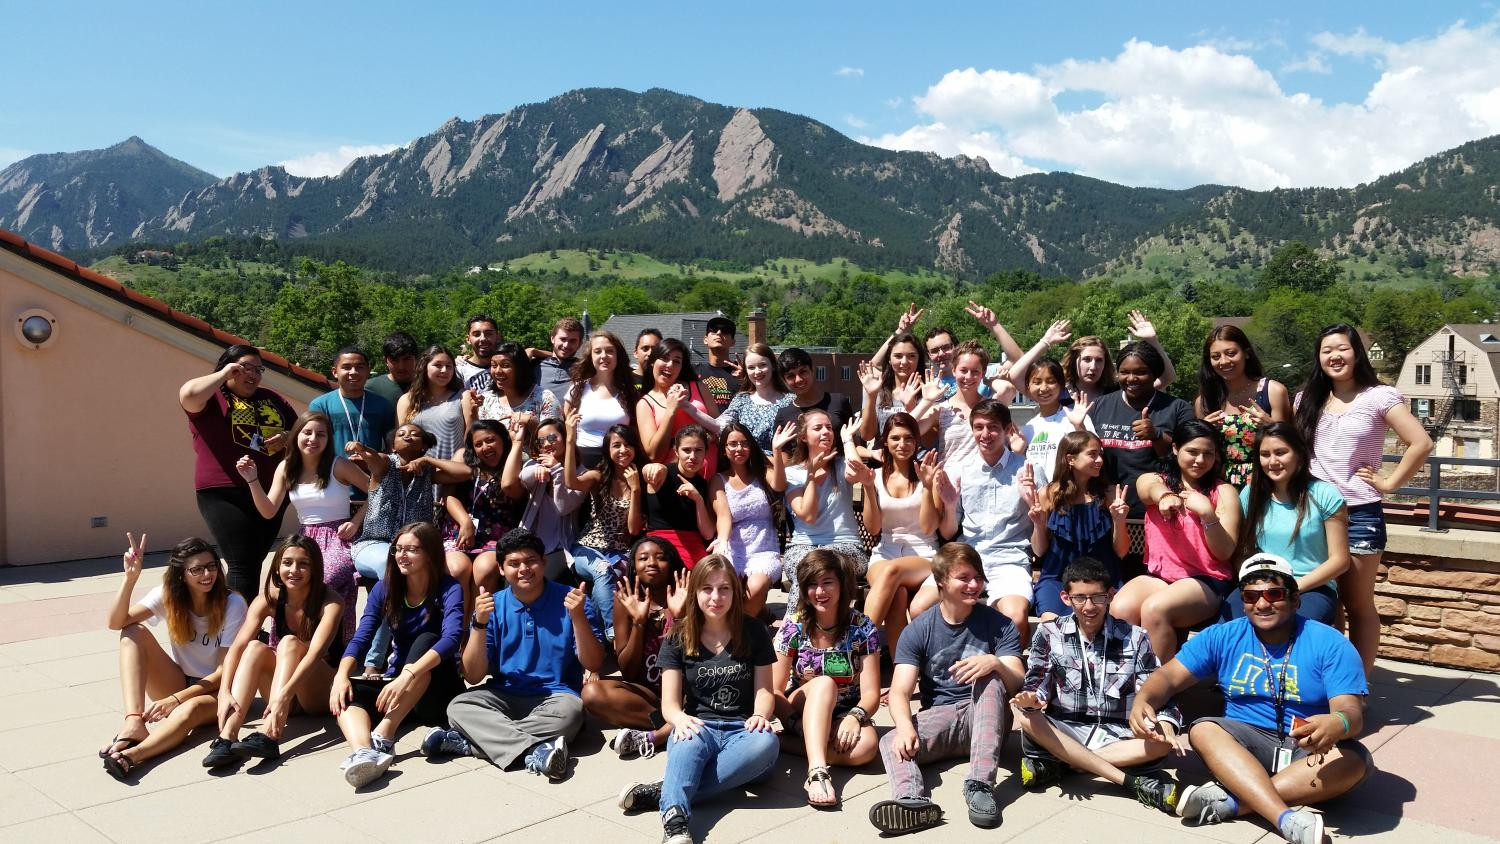 Students Pose Together with Mountains